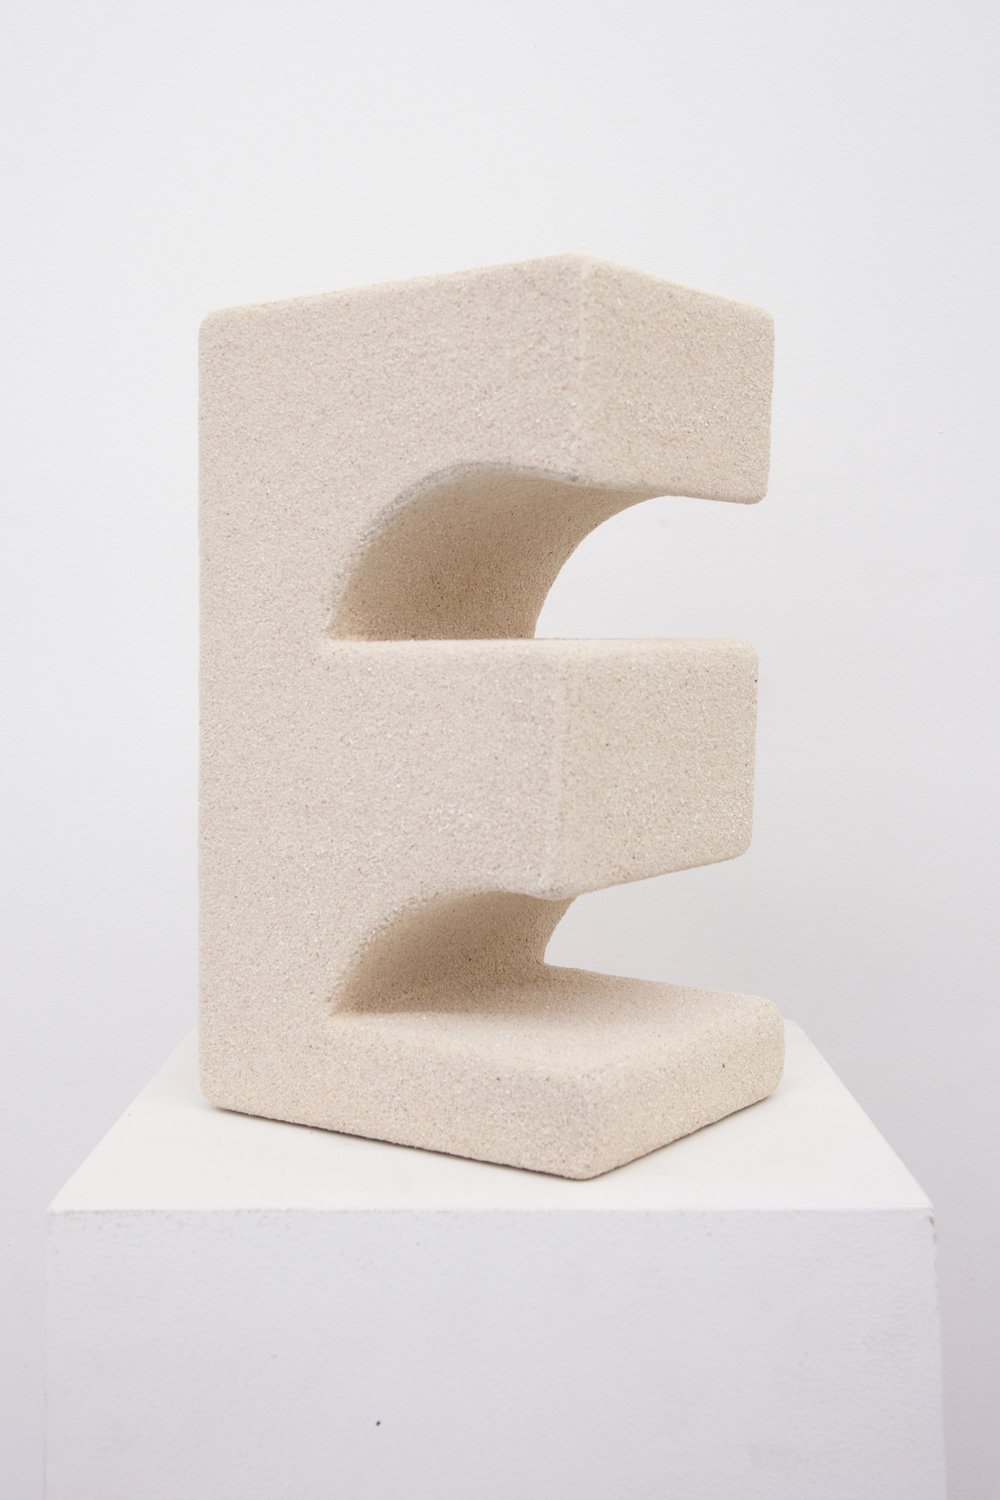 Elizabeth Atterbury.  The Well (Piece from the first) , 2018, Beach sand, MDF and glue. 11 x 6.50 x 5.12 in